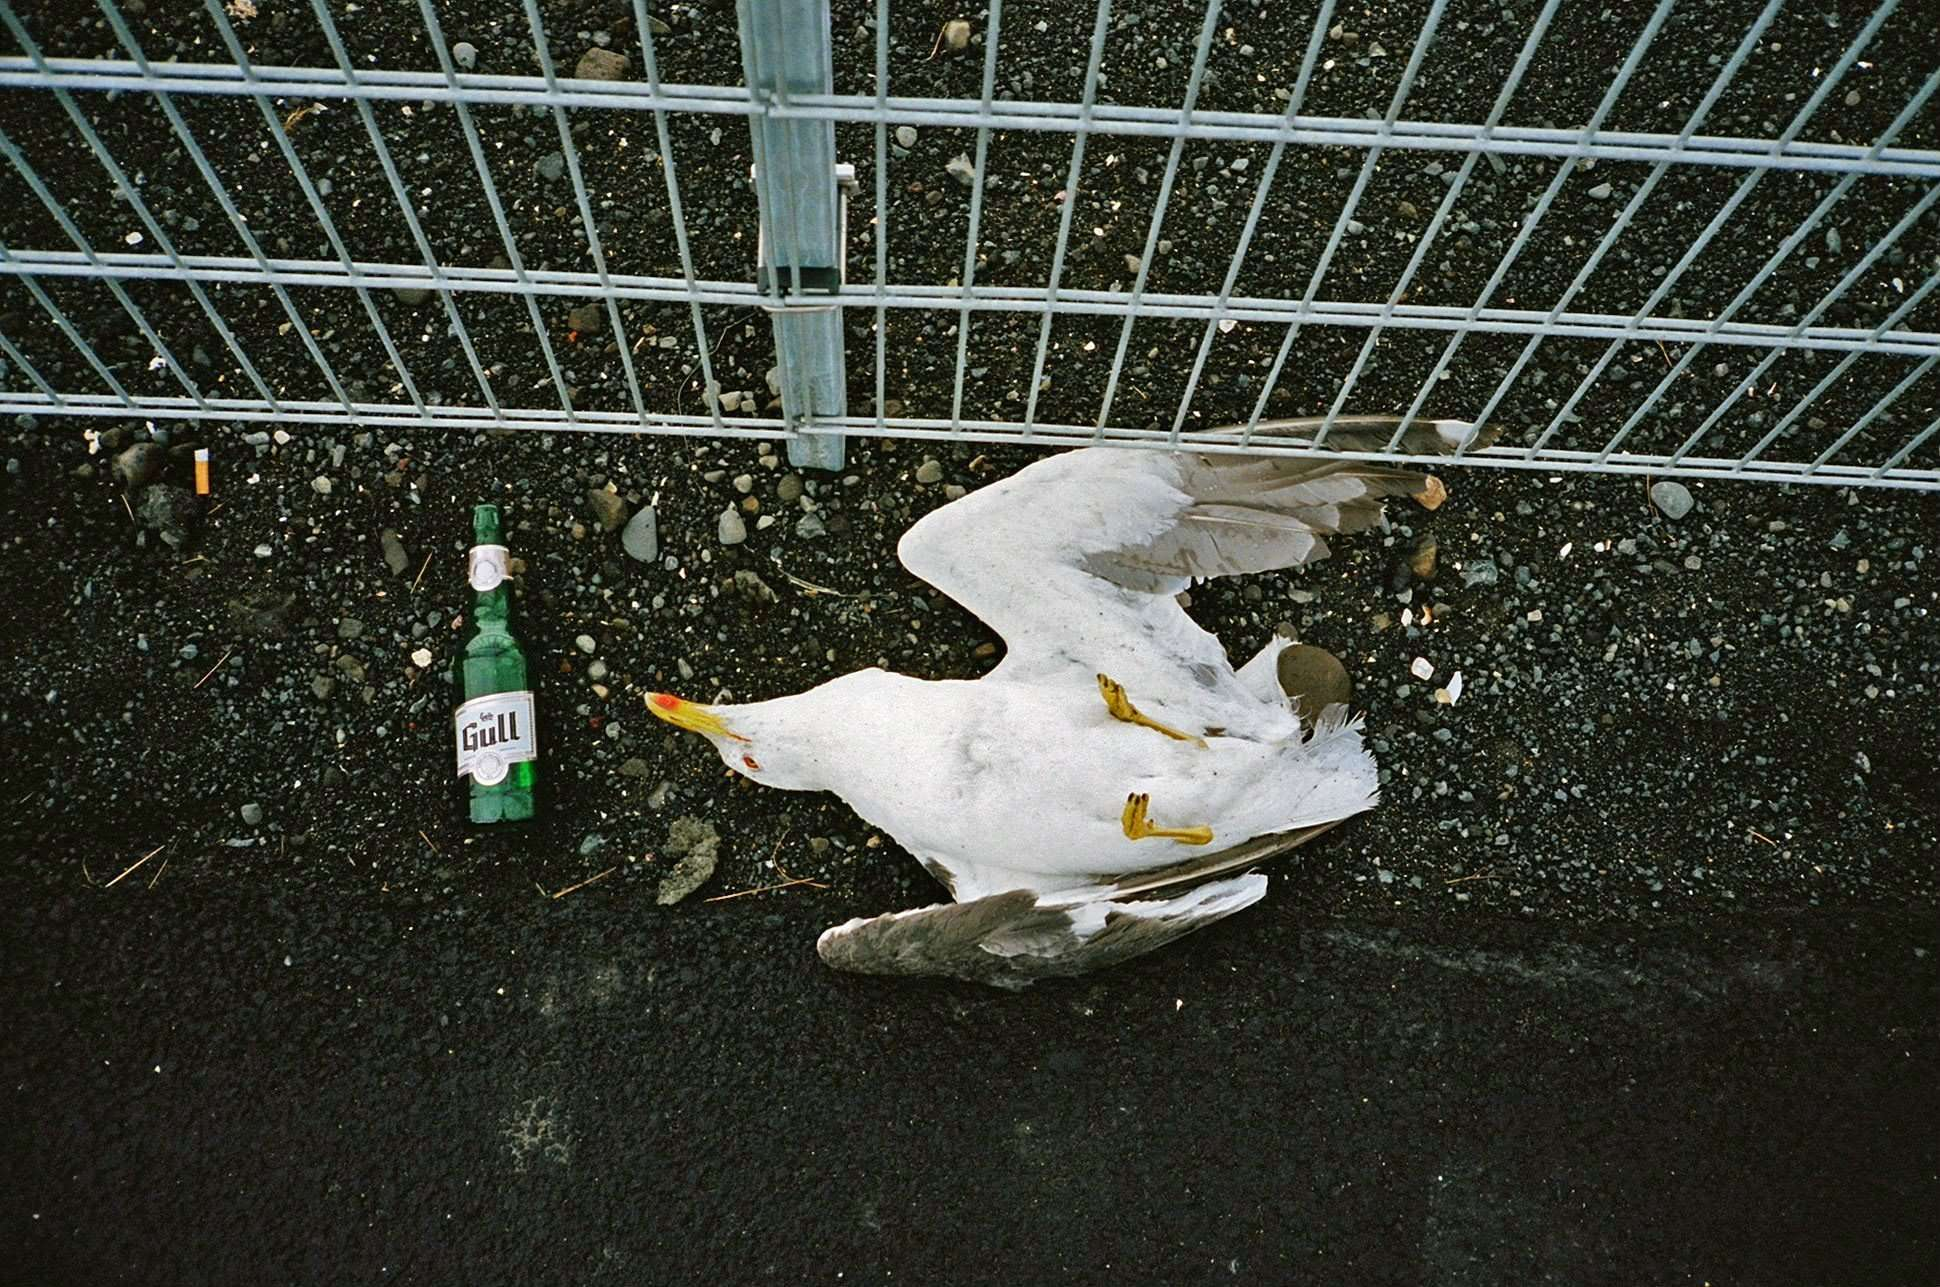 stephen-leslie-gull-beer